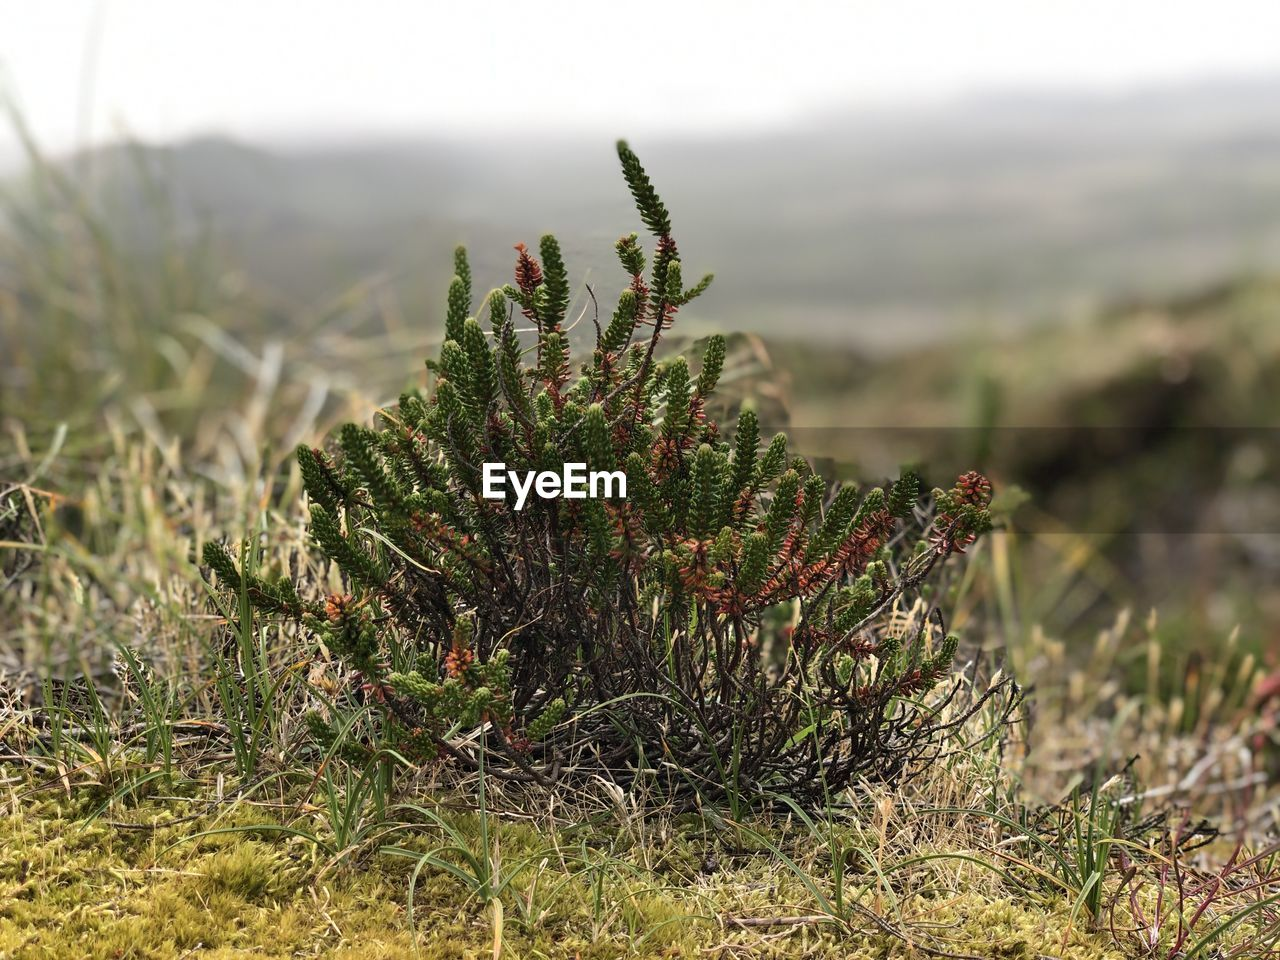 plant, growth, nature, beauty in nature, green color, day, no people, focus on foreground, land, field, tranquility, close-up, outdoors, succulent plant, selective focus, environment, cactus, grass, non-urban scene, thorn, coniferous tree